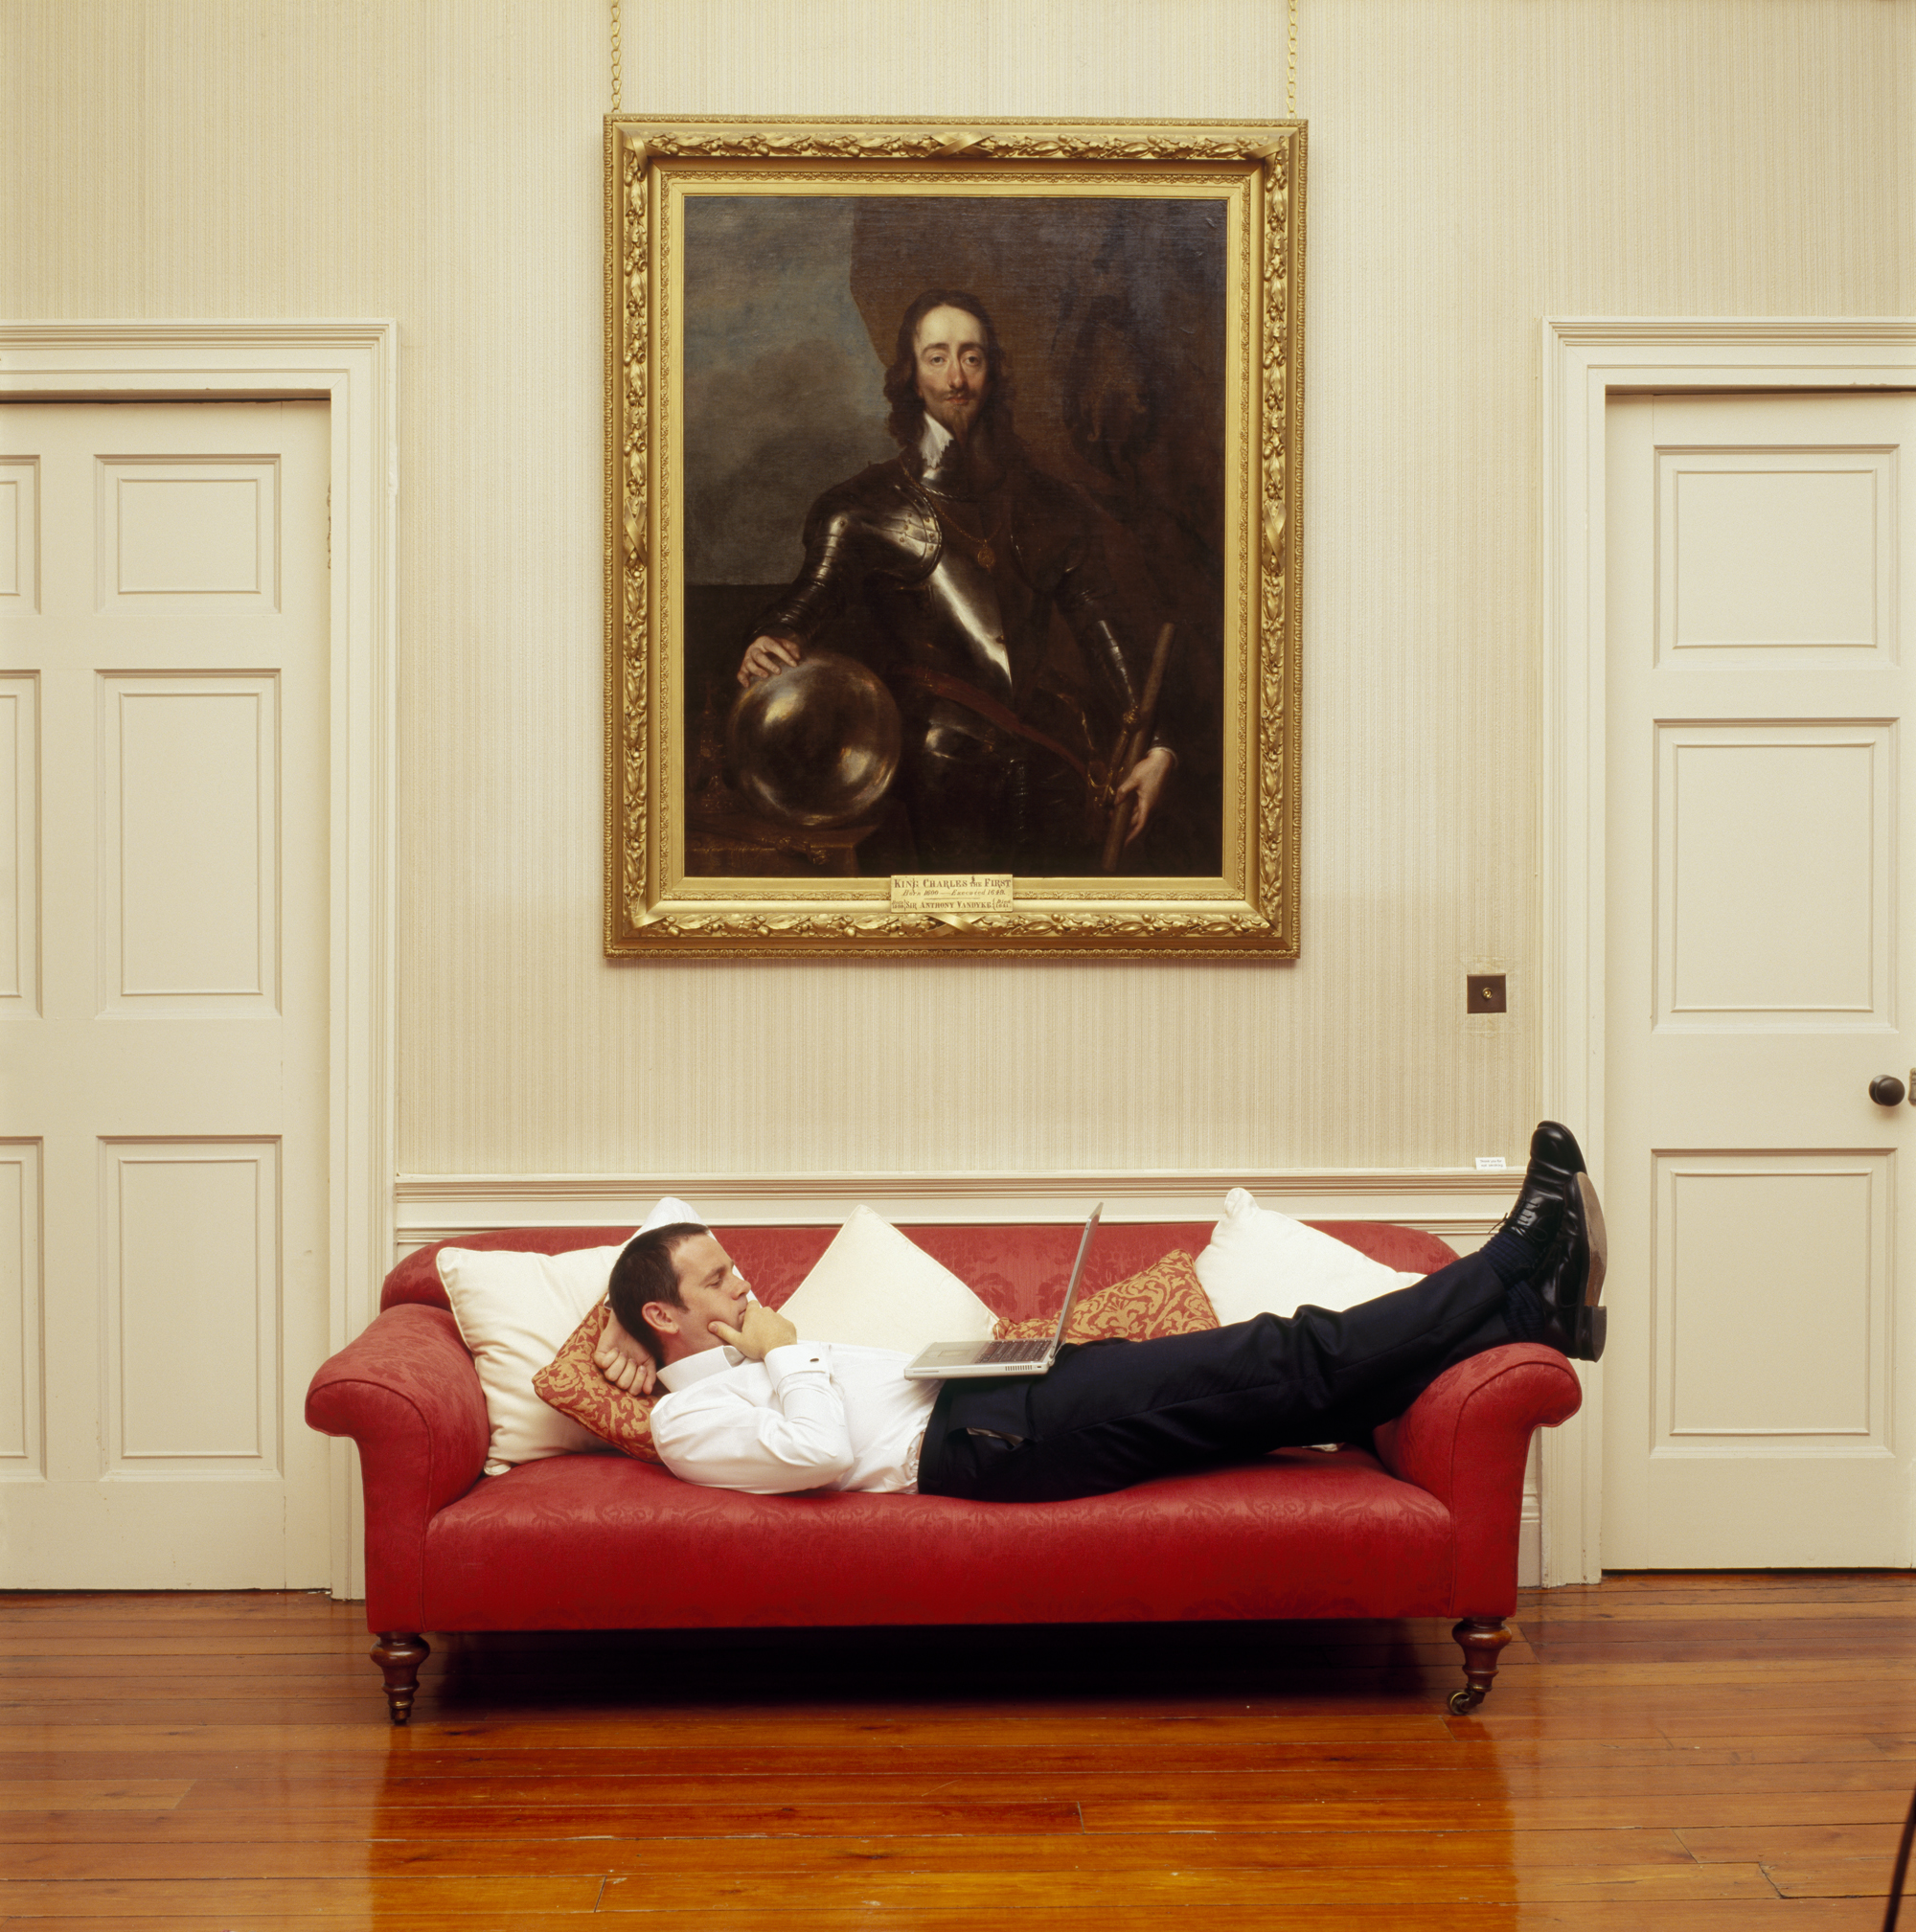 zack-reclining-below-king-charles-in-library-001